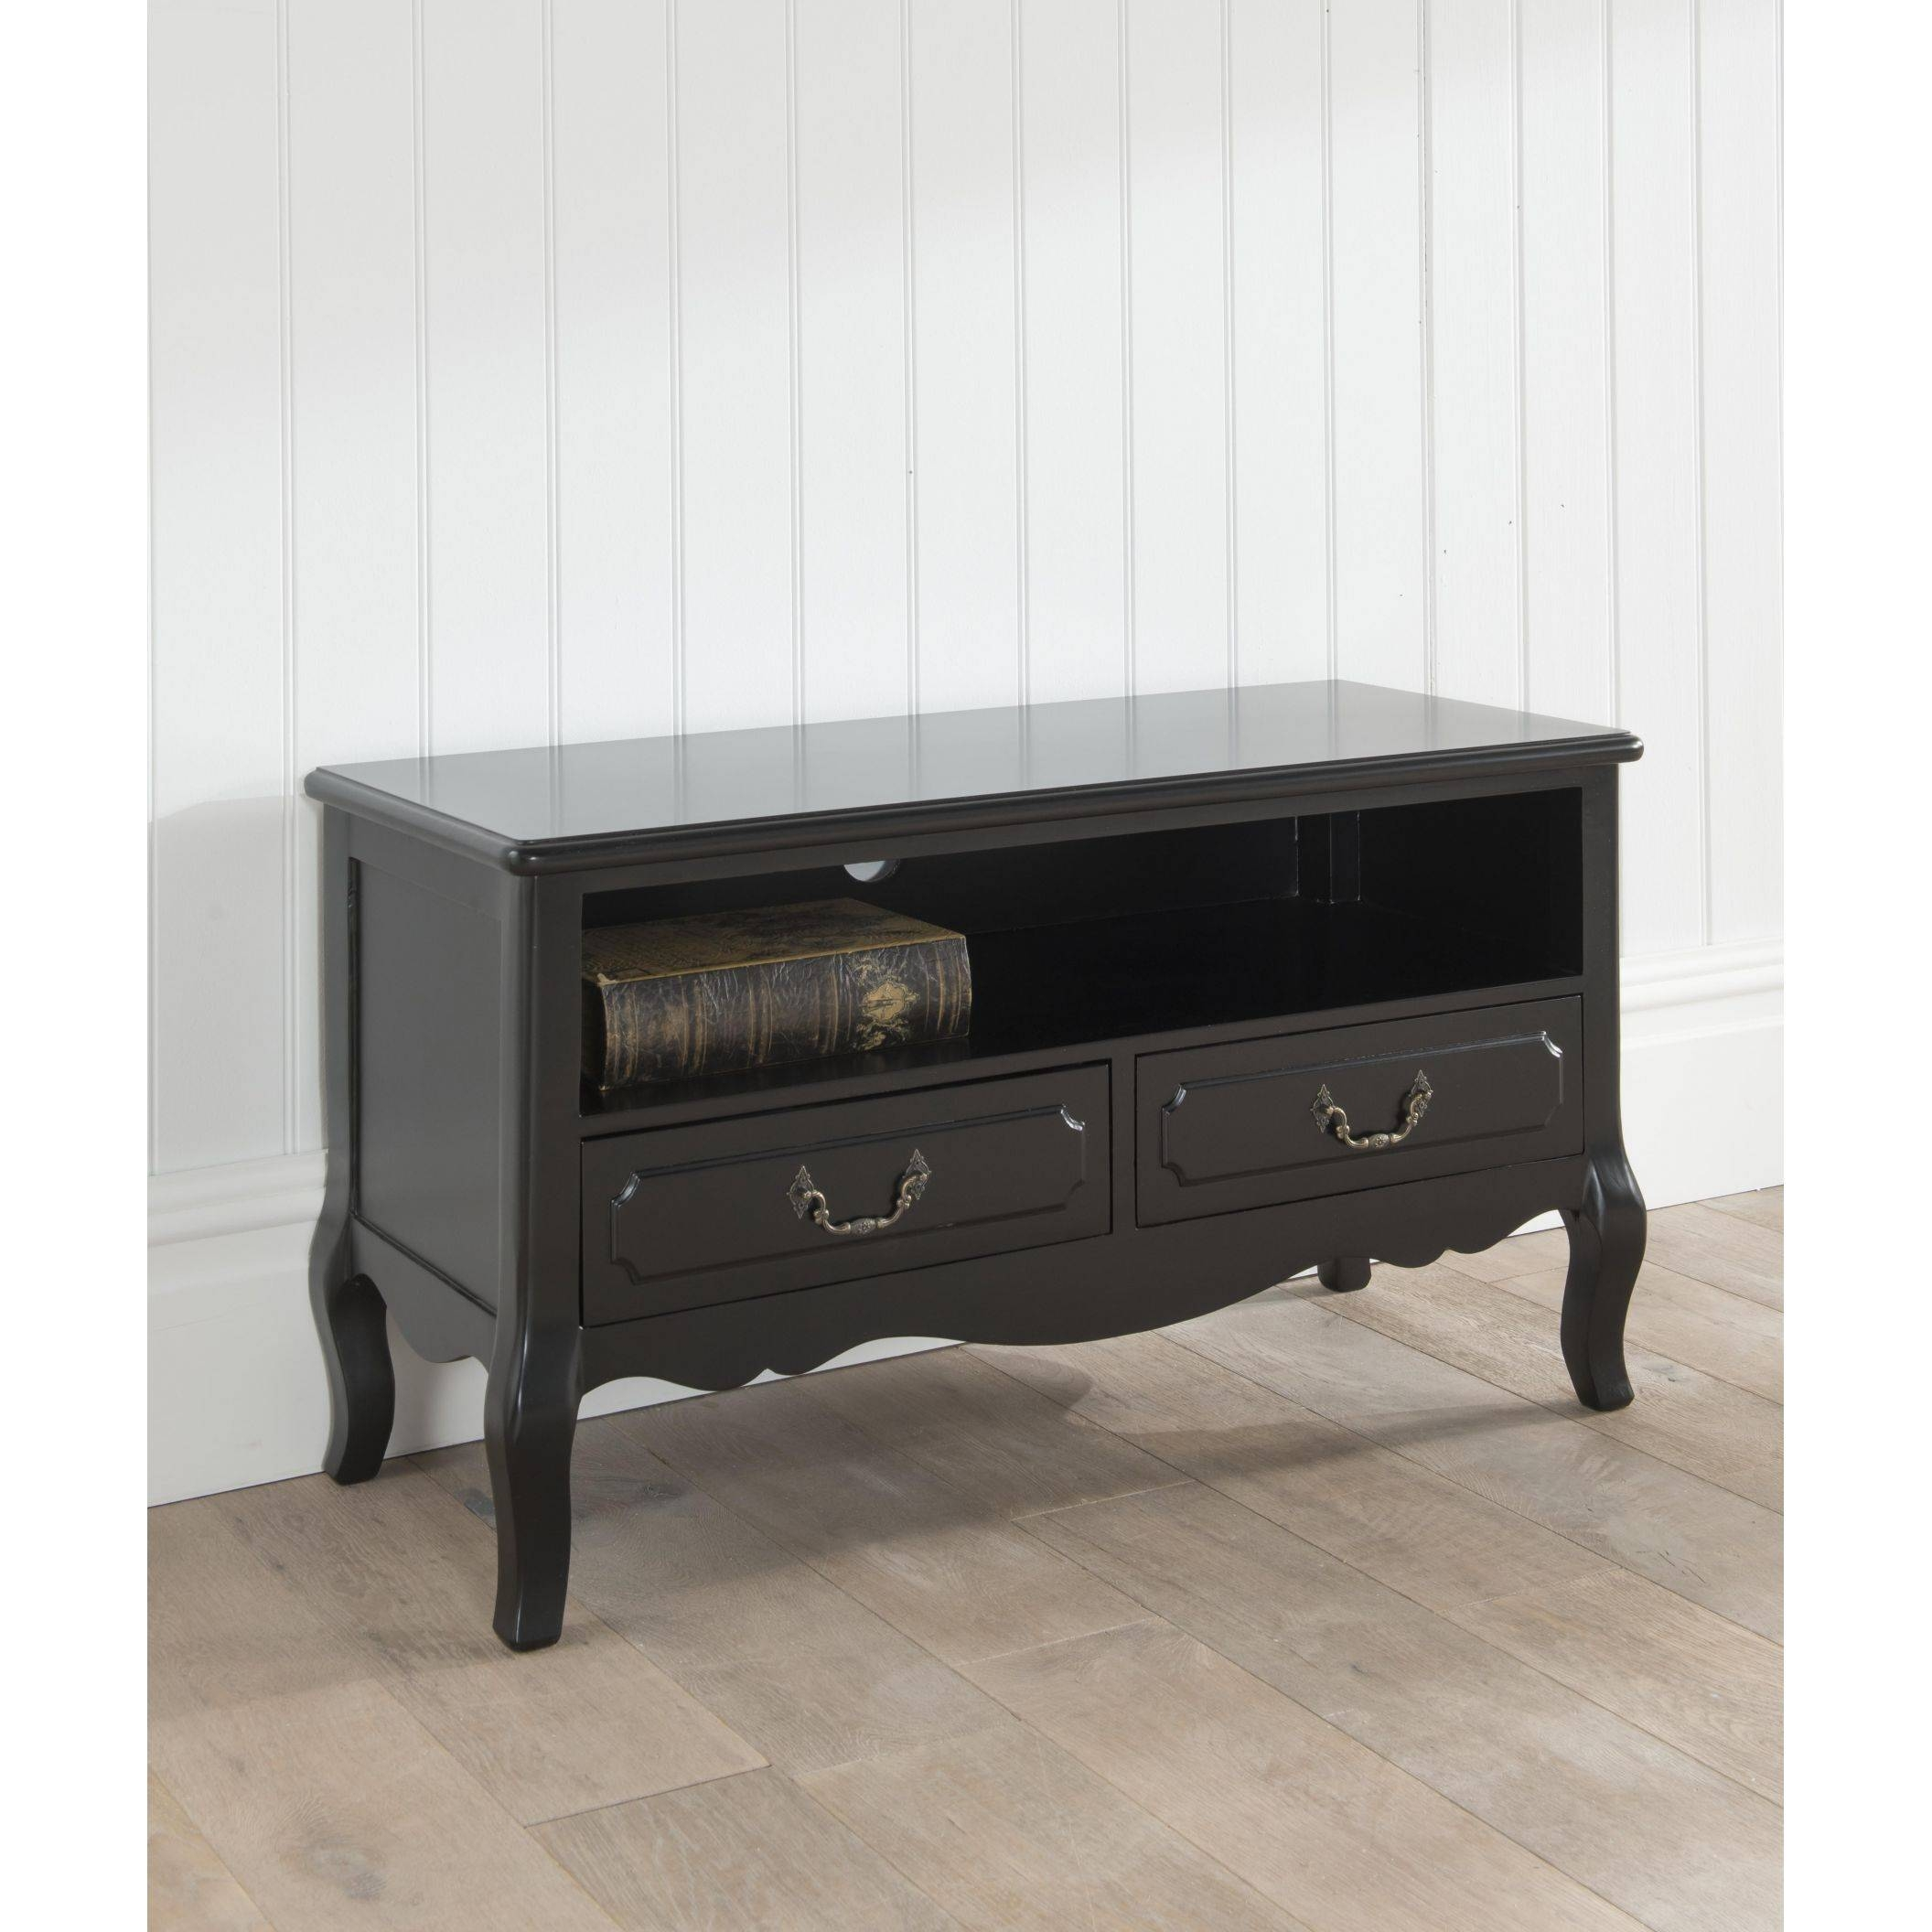 Antique French Tv Stand | Black French Style Furniture with French Style Tv Cabinets (Image 3 of 15)